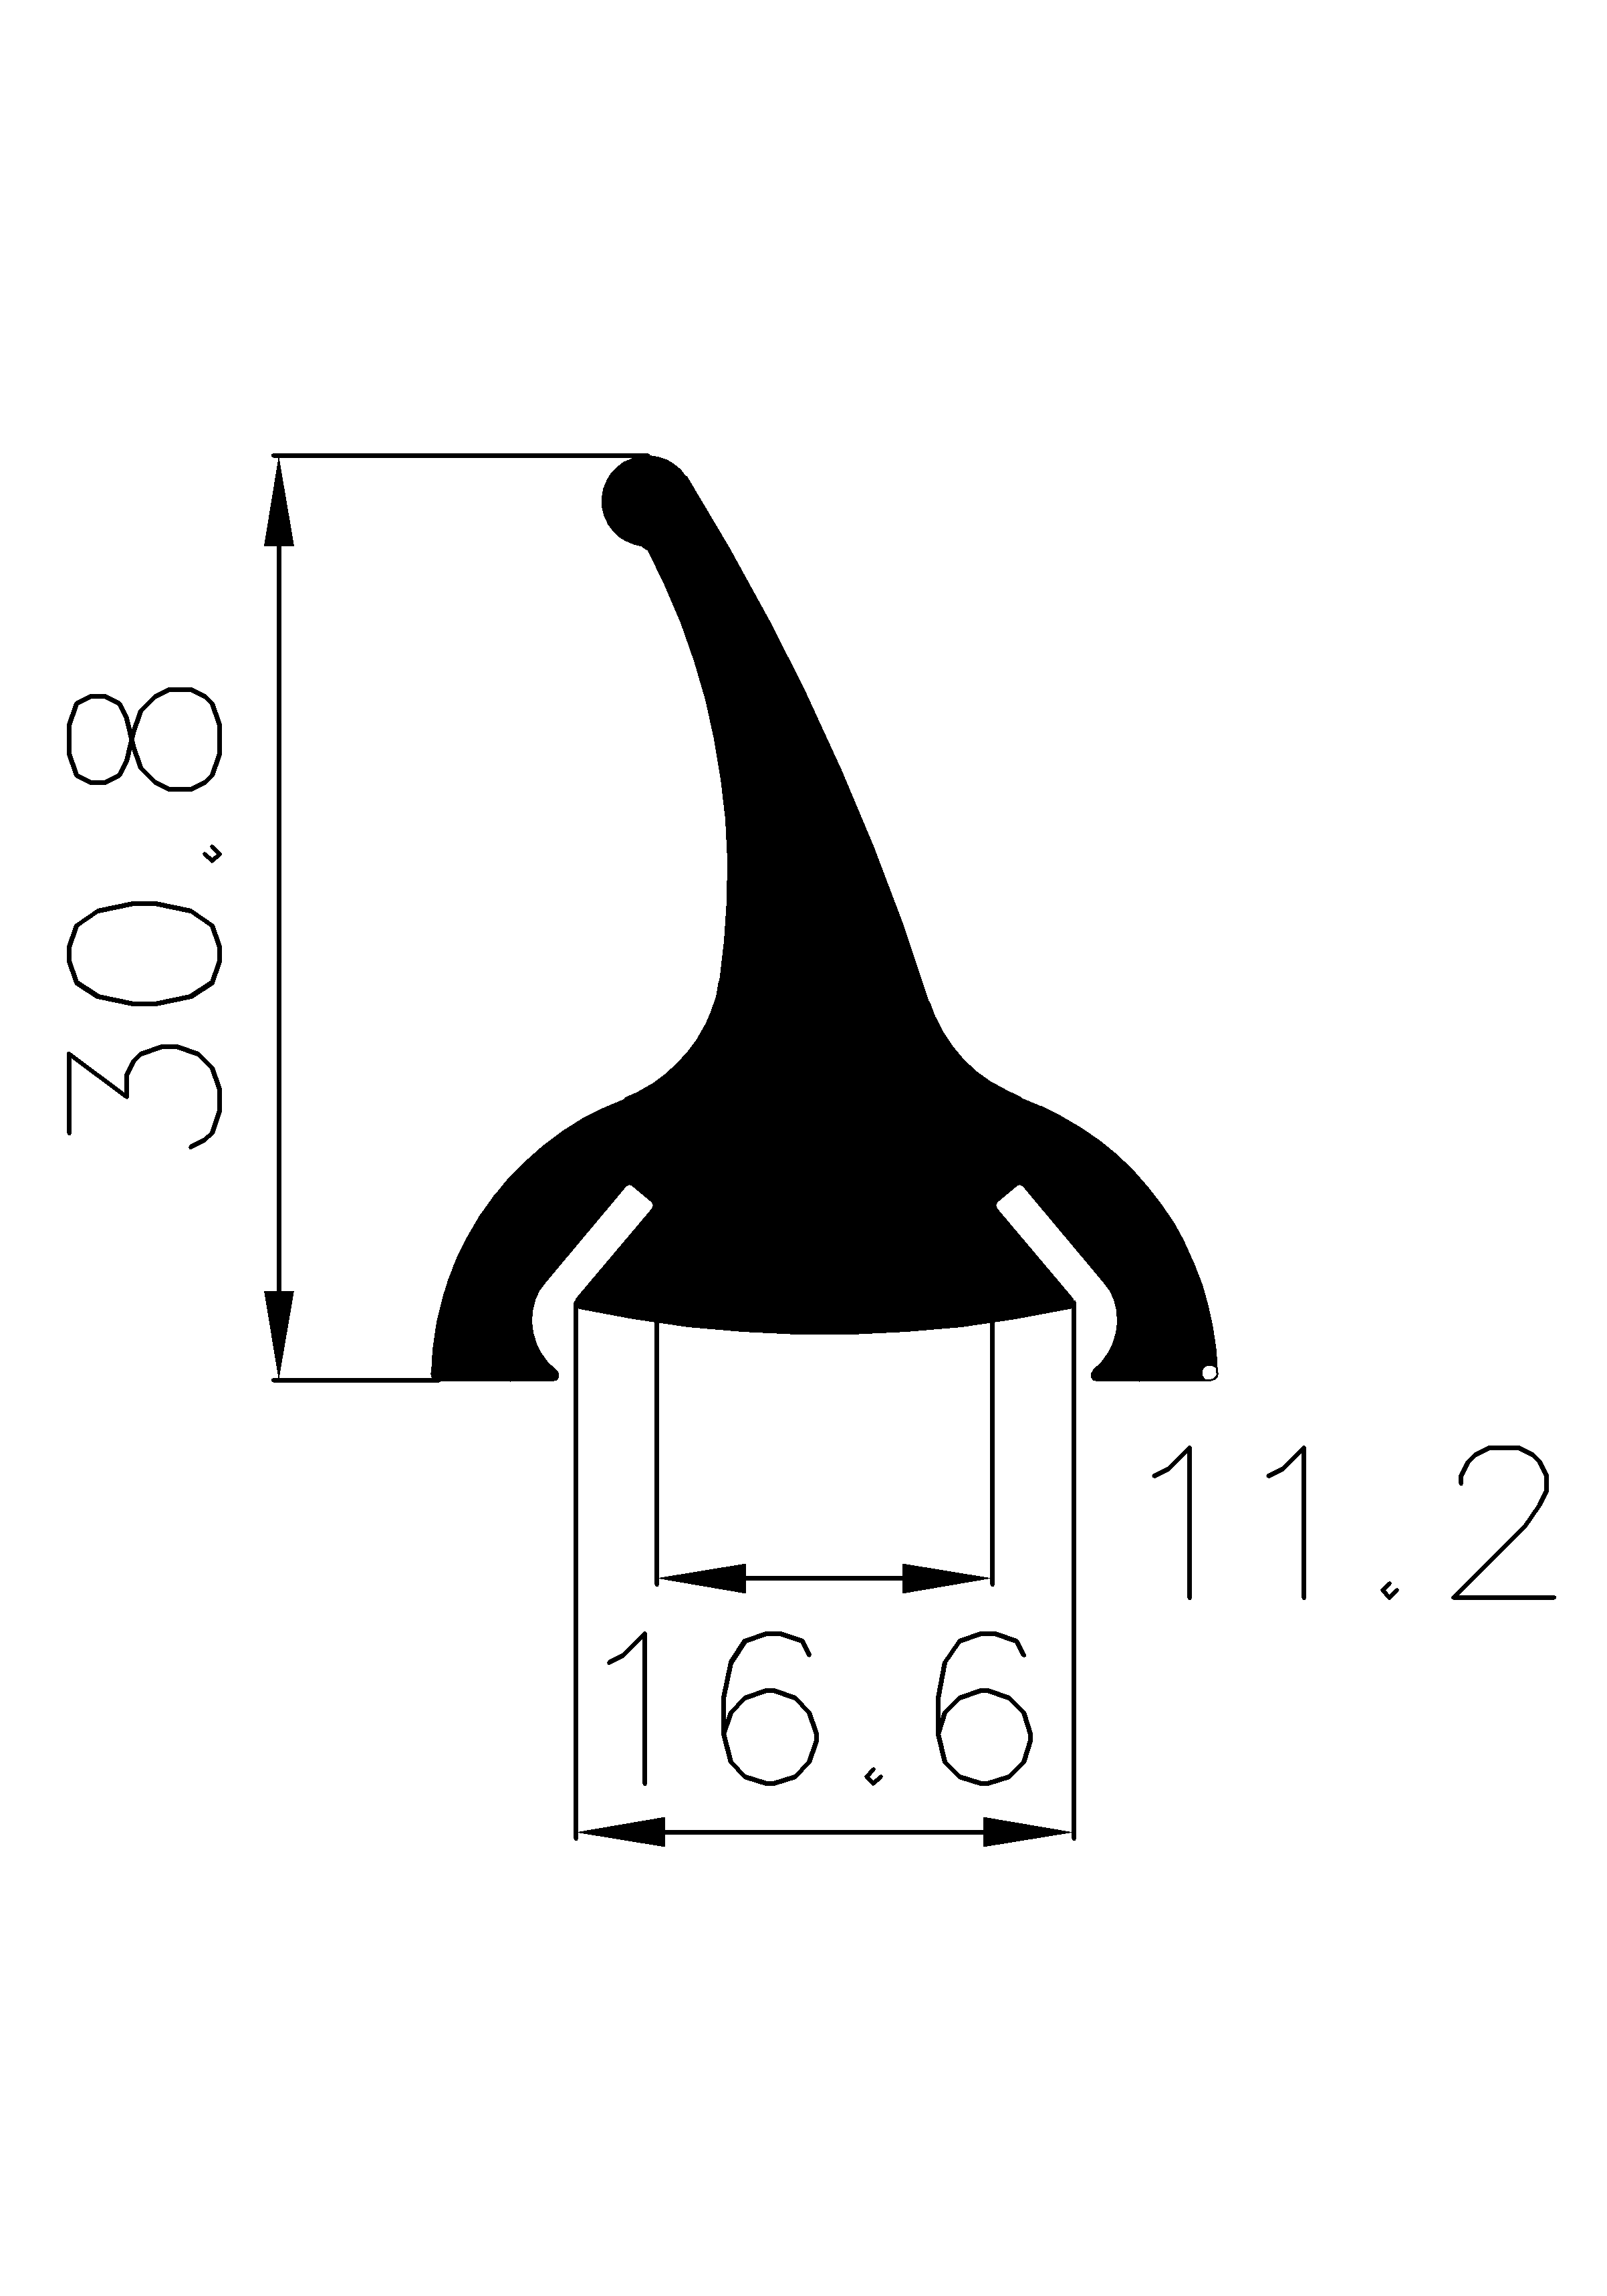 7790365KG - Other gasket profiles